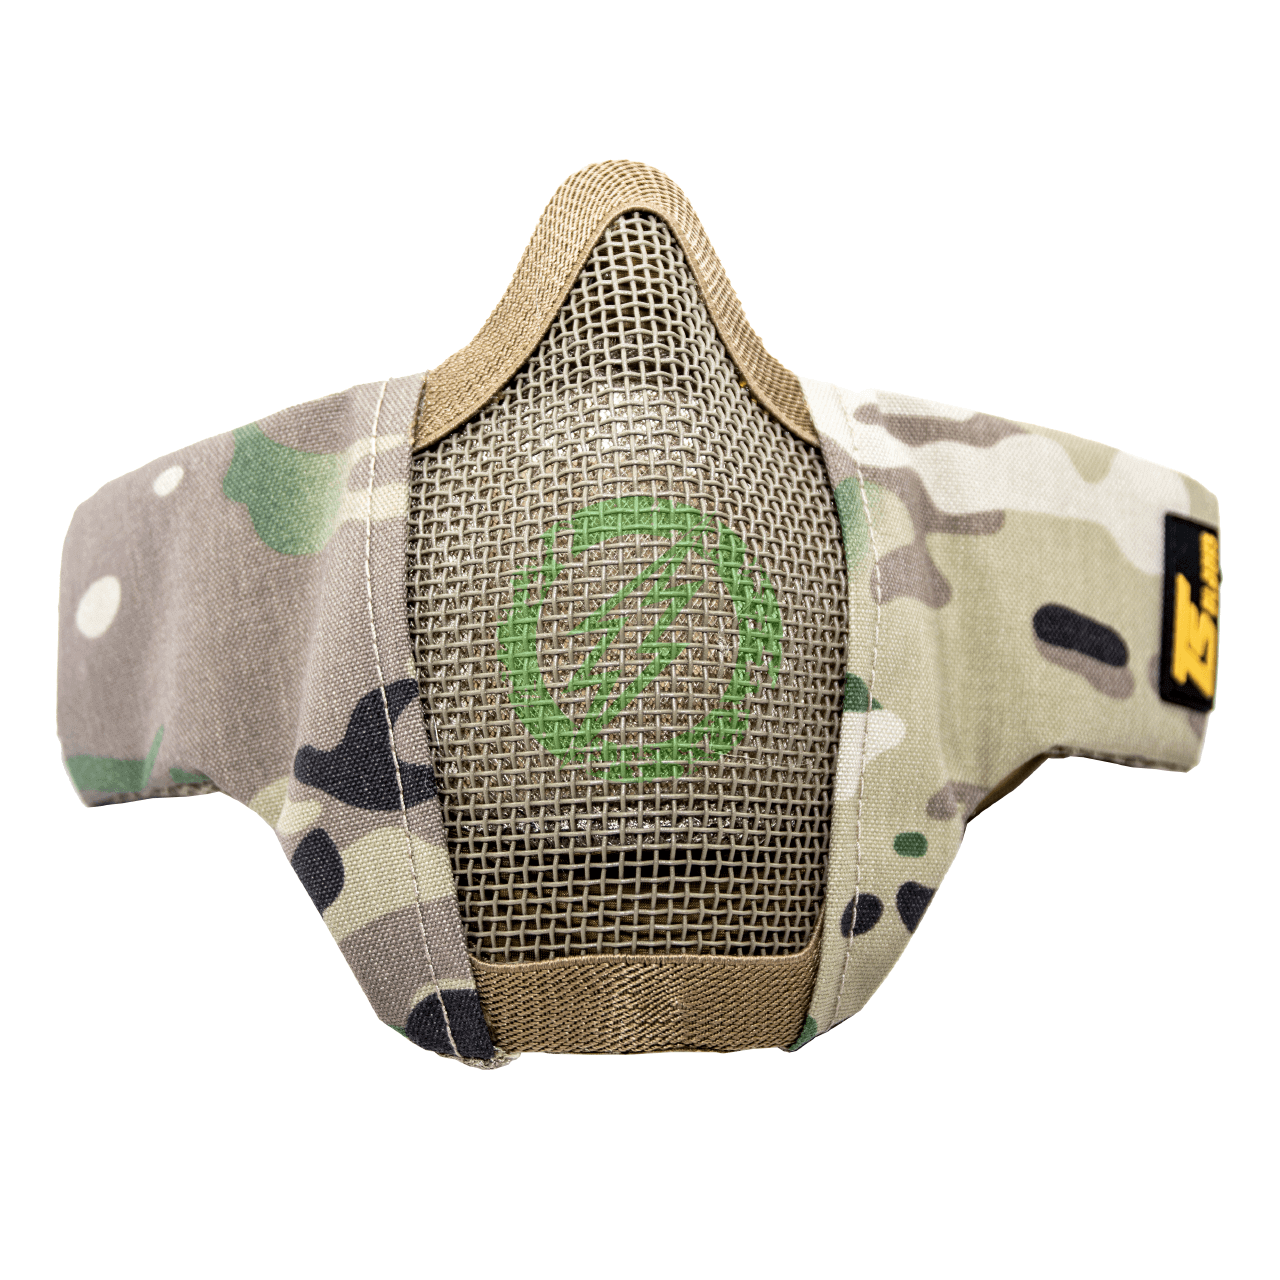 TS Blades Mesh Padded Lower Half Face Mask with Filter Storage multicam